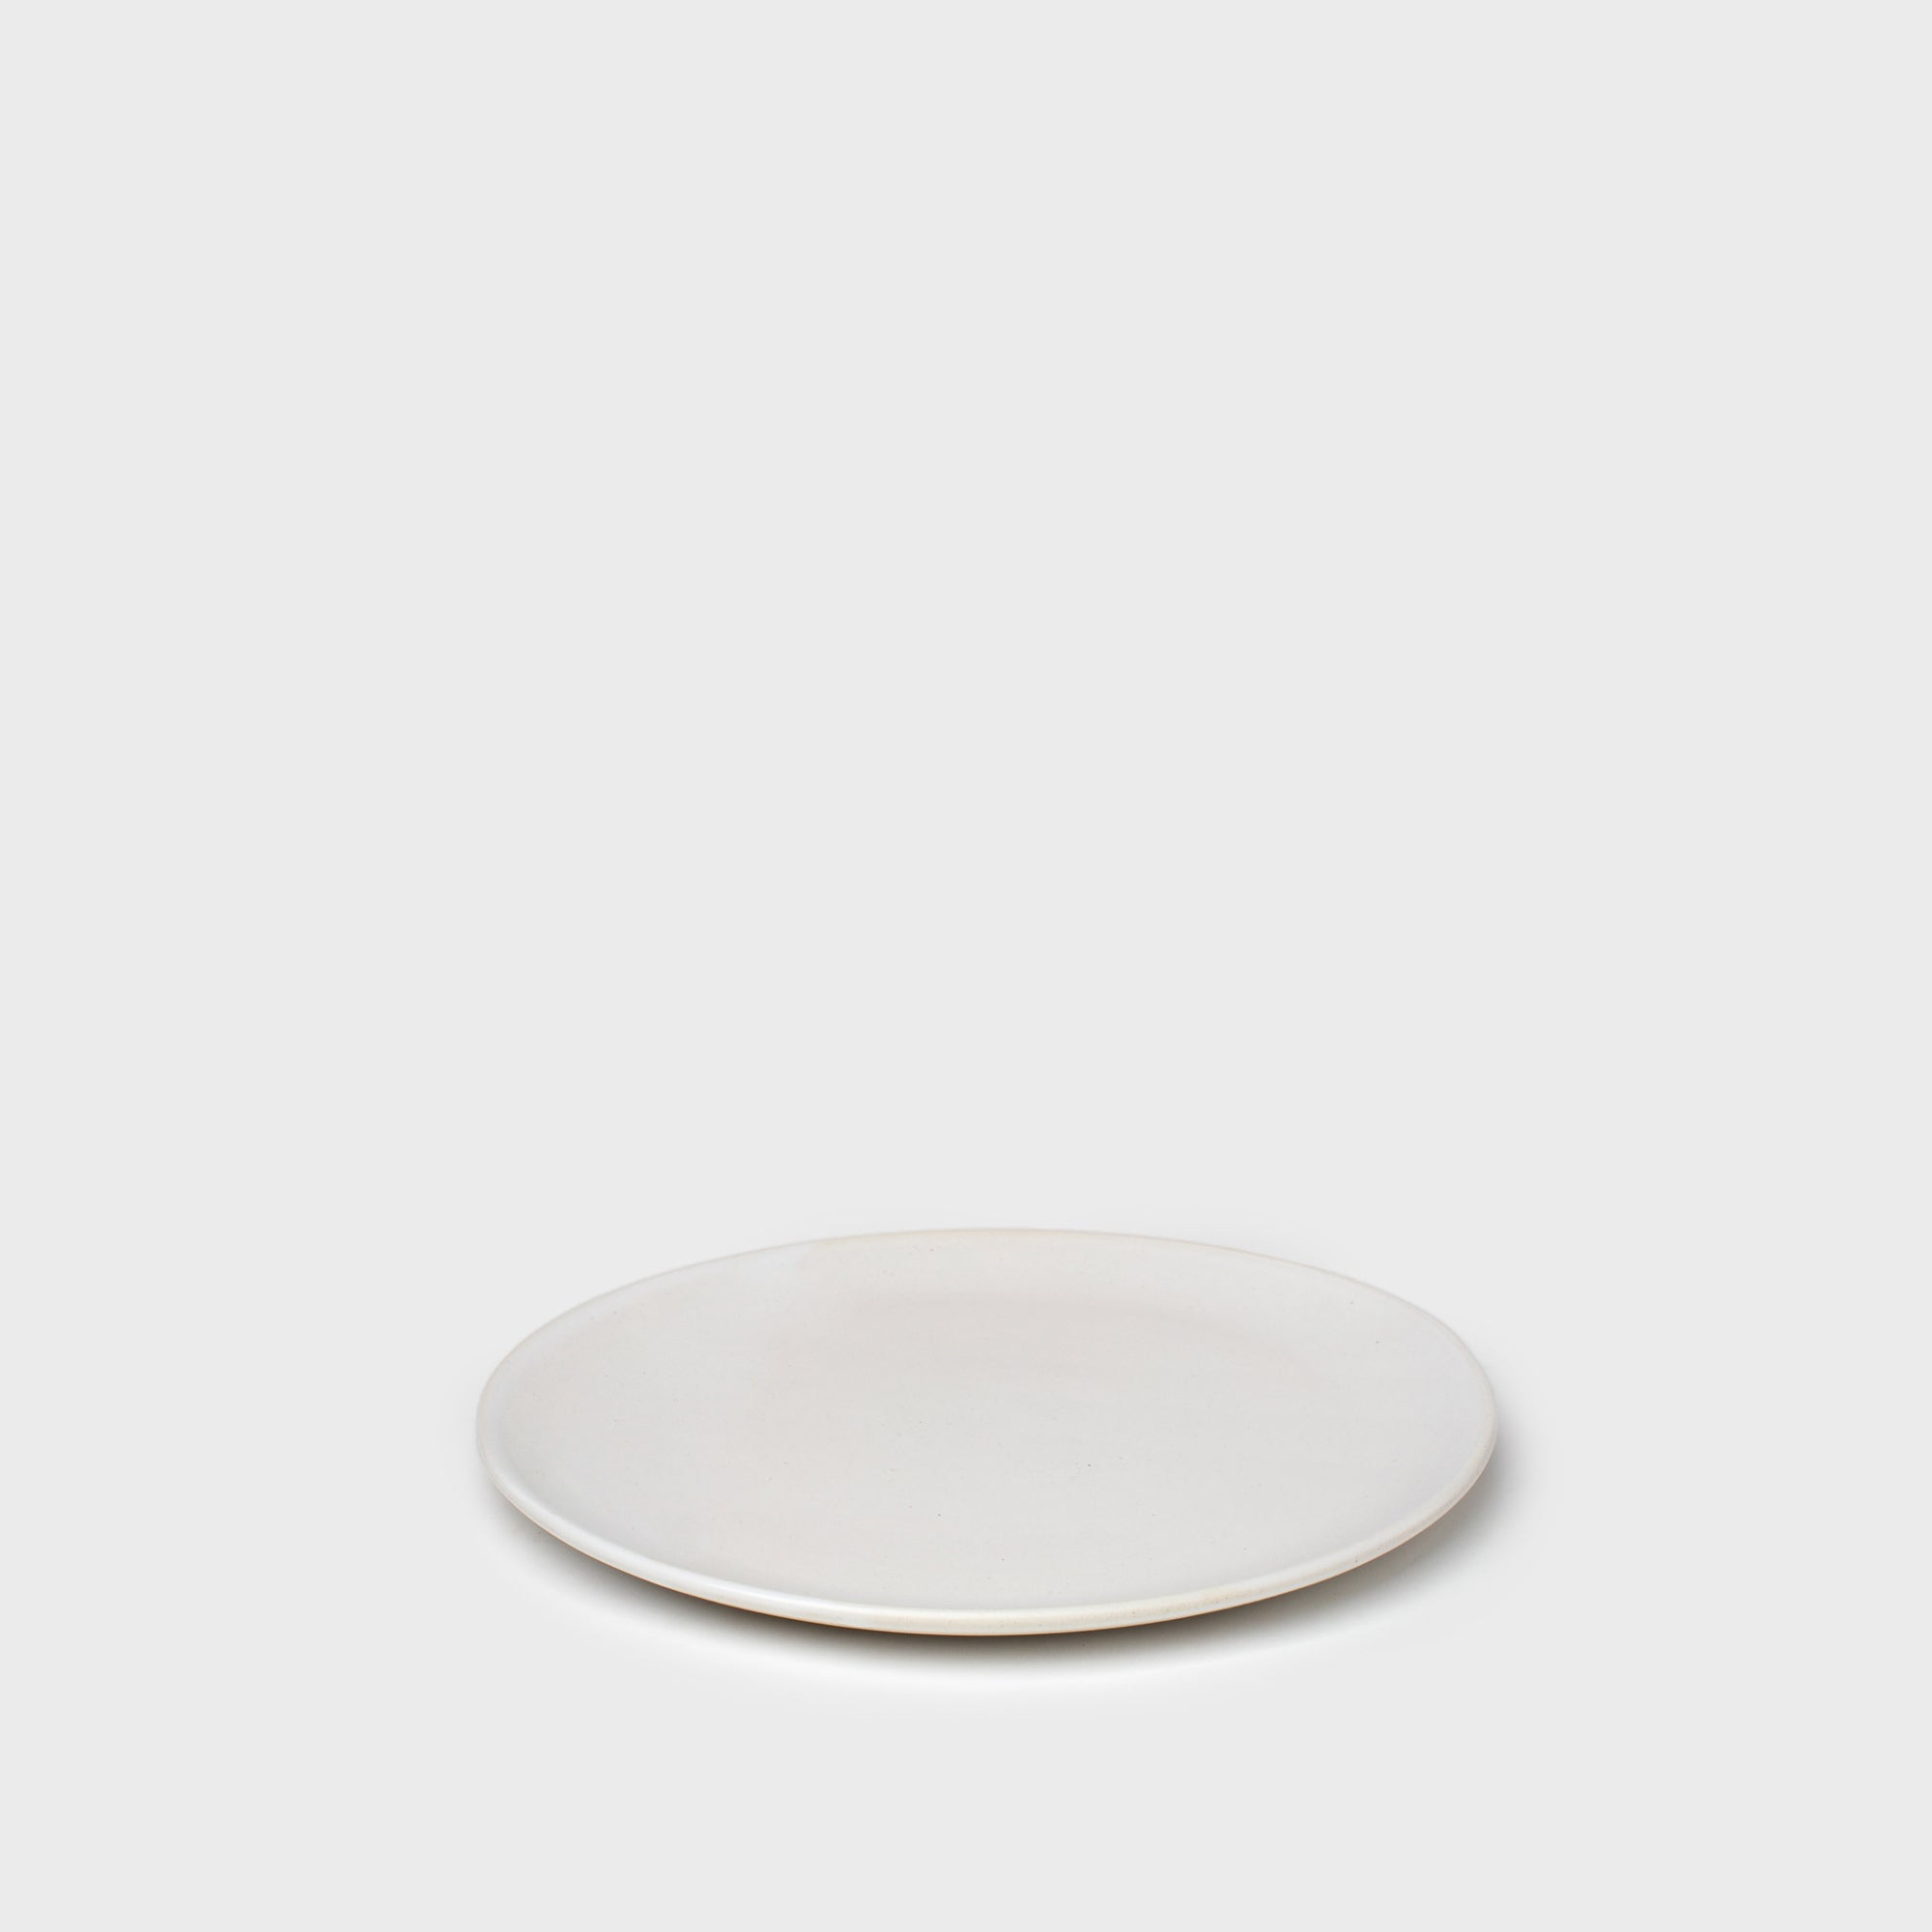 Salad Plate in White by Meghan Flynn